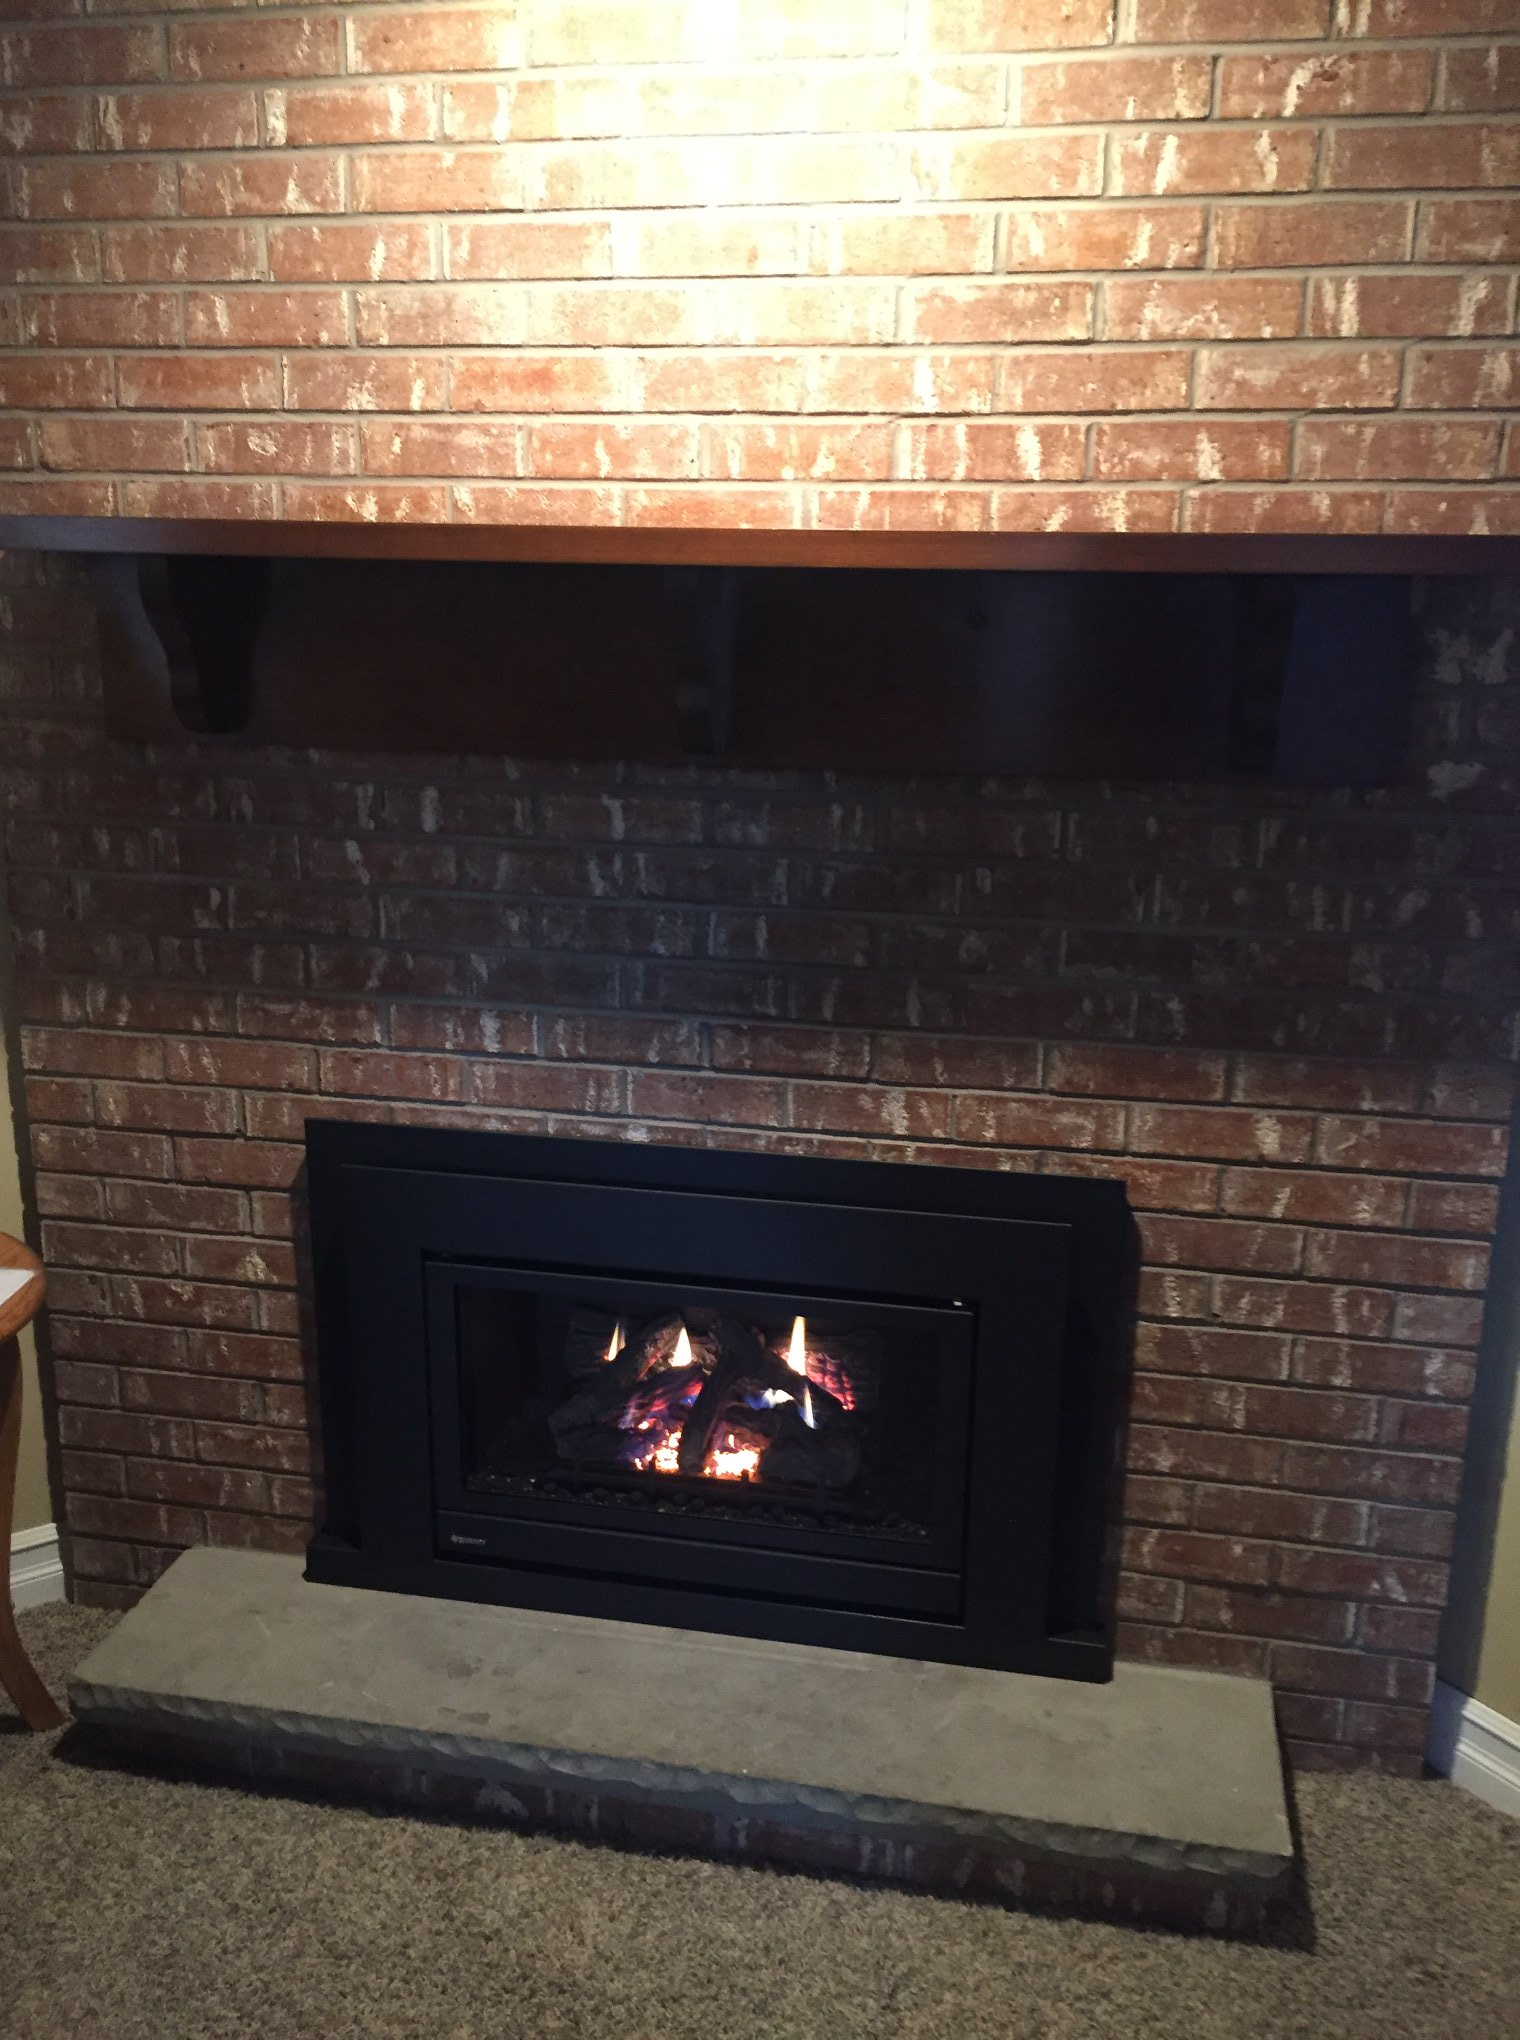 Regency U31-10 Energy Gas Insert into woodburning fireplace